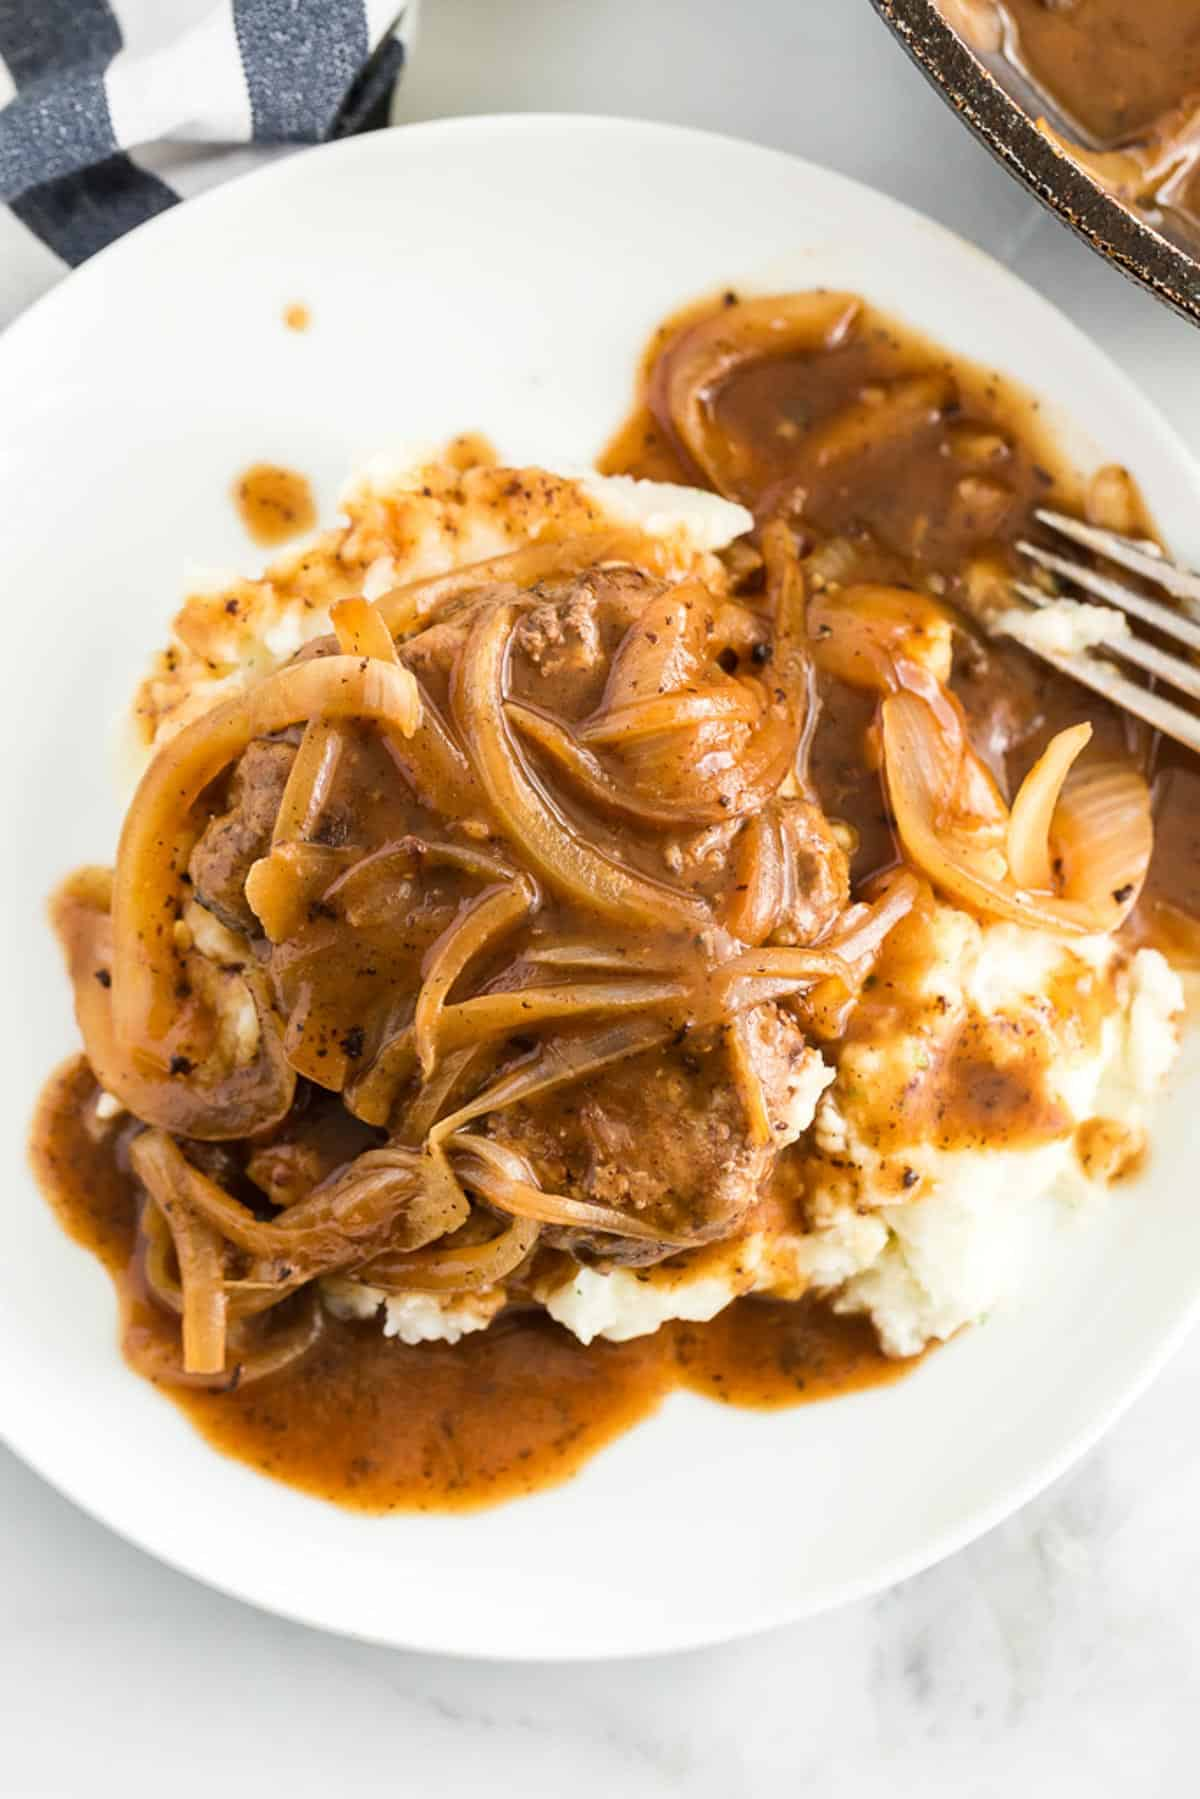 hamburger steak on a white plate smothered in onions